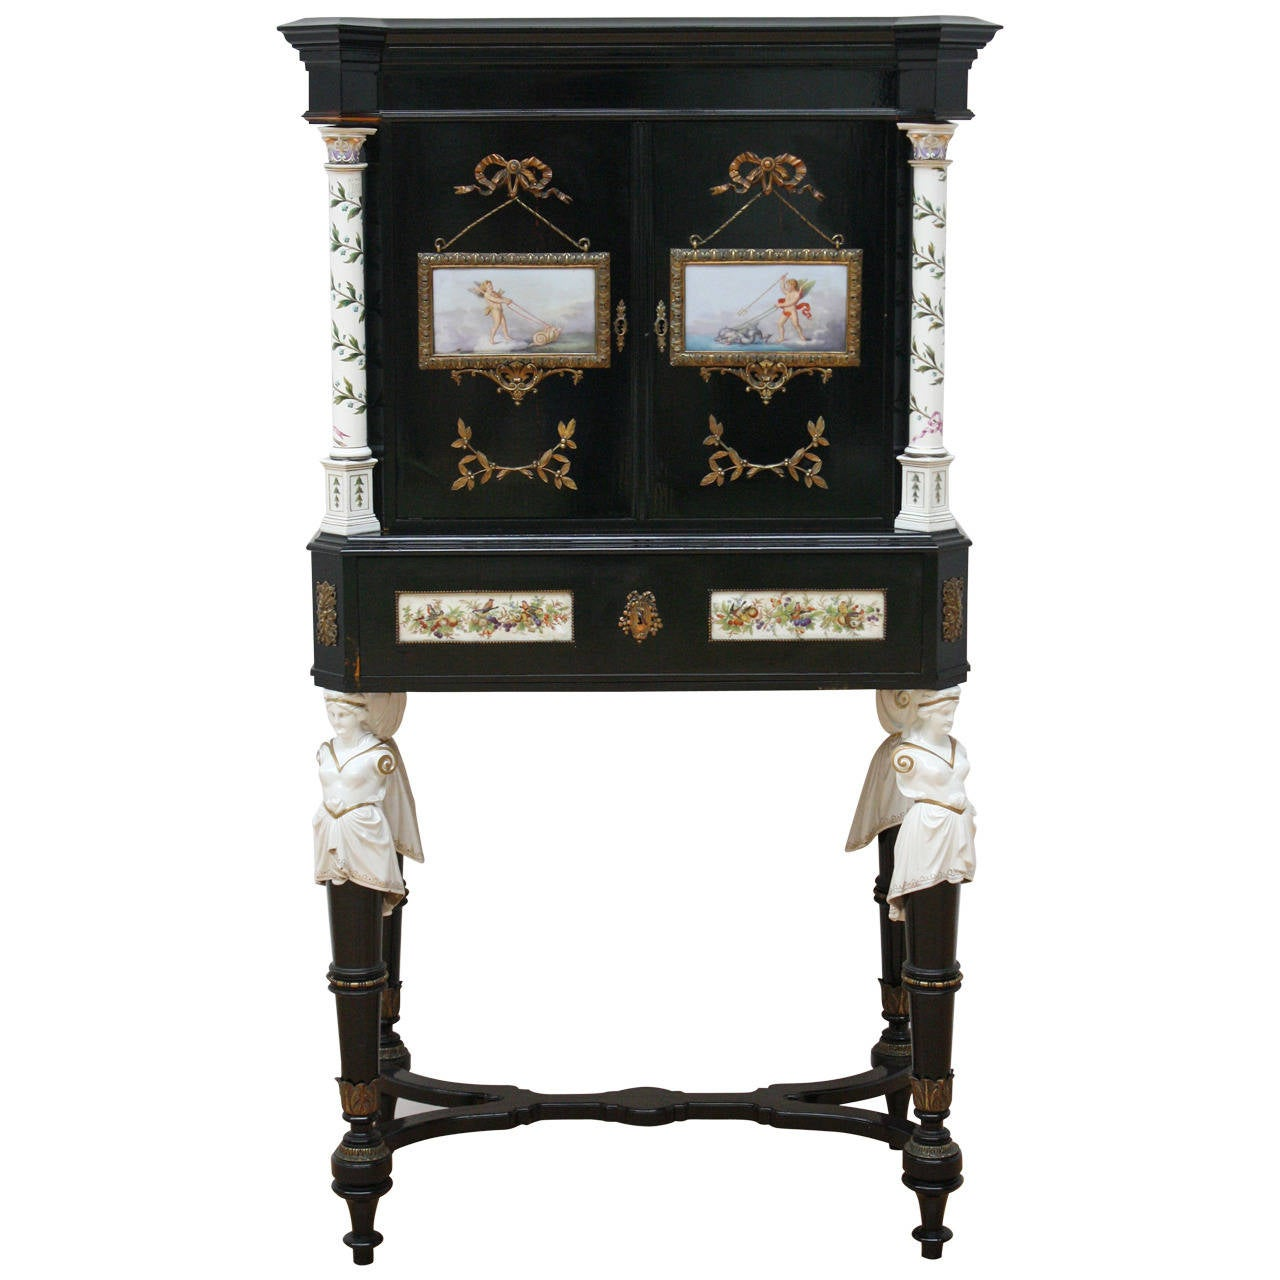 19th century elegant bonheur du jour with porcelain for. Black Bedroom Furniture Sets. Home Design Ideas